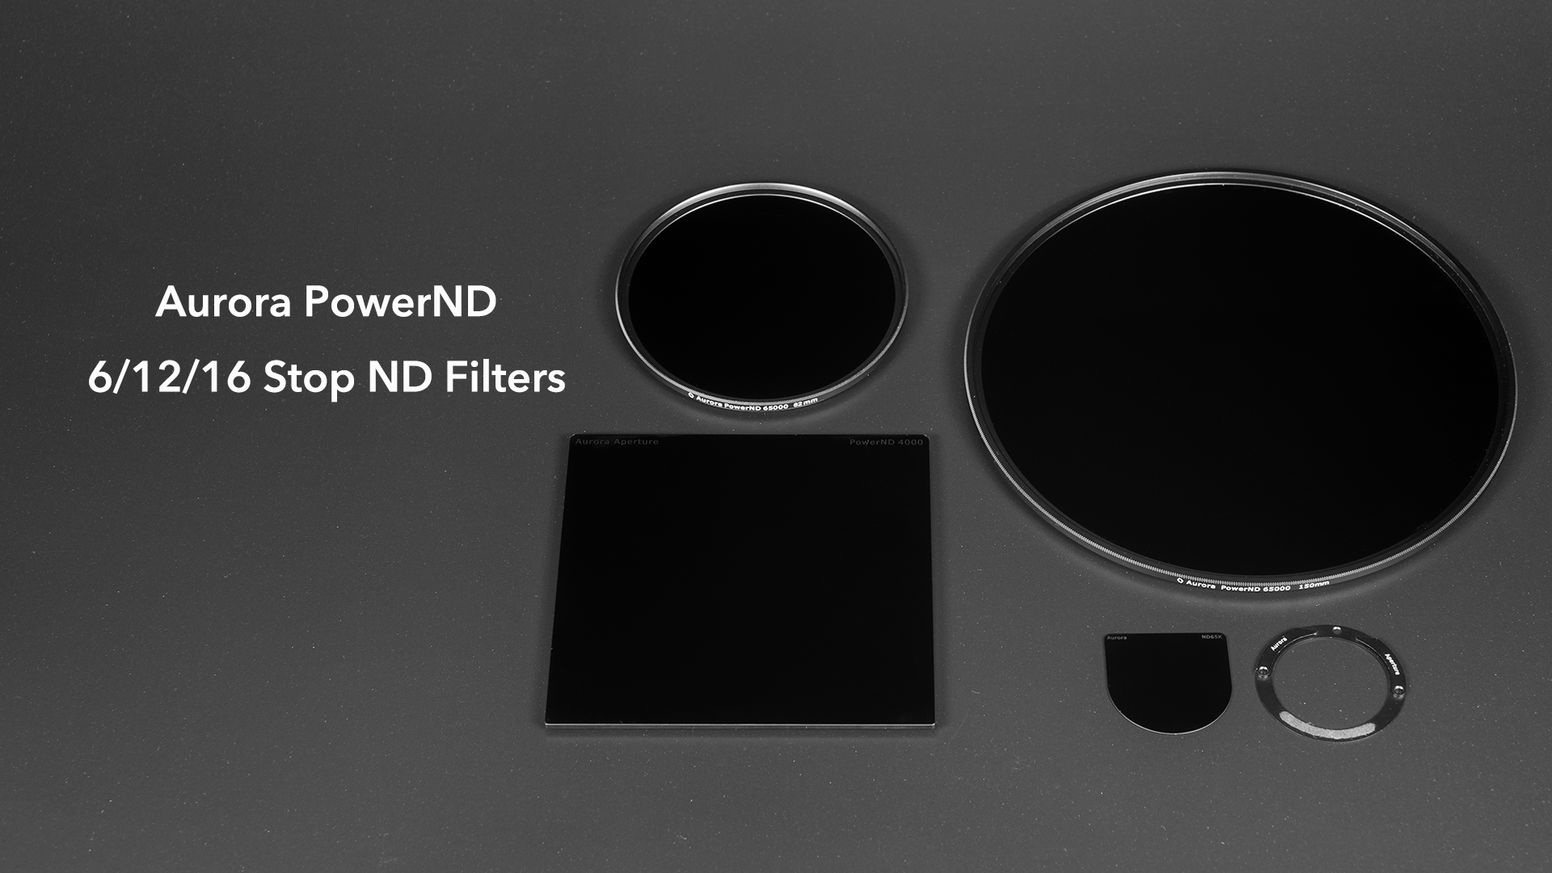 ND filters of 6, 12, and 16 stops with formats of circular (37-95mm), 100x100mm, Canon EF 11-24 F4L rear adapter, and Nikon 14-24/2.8.